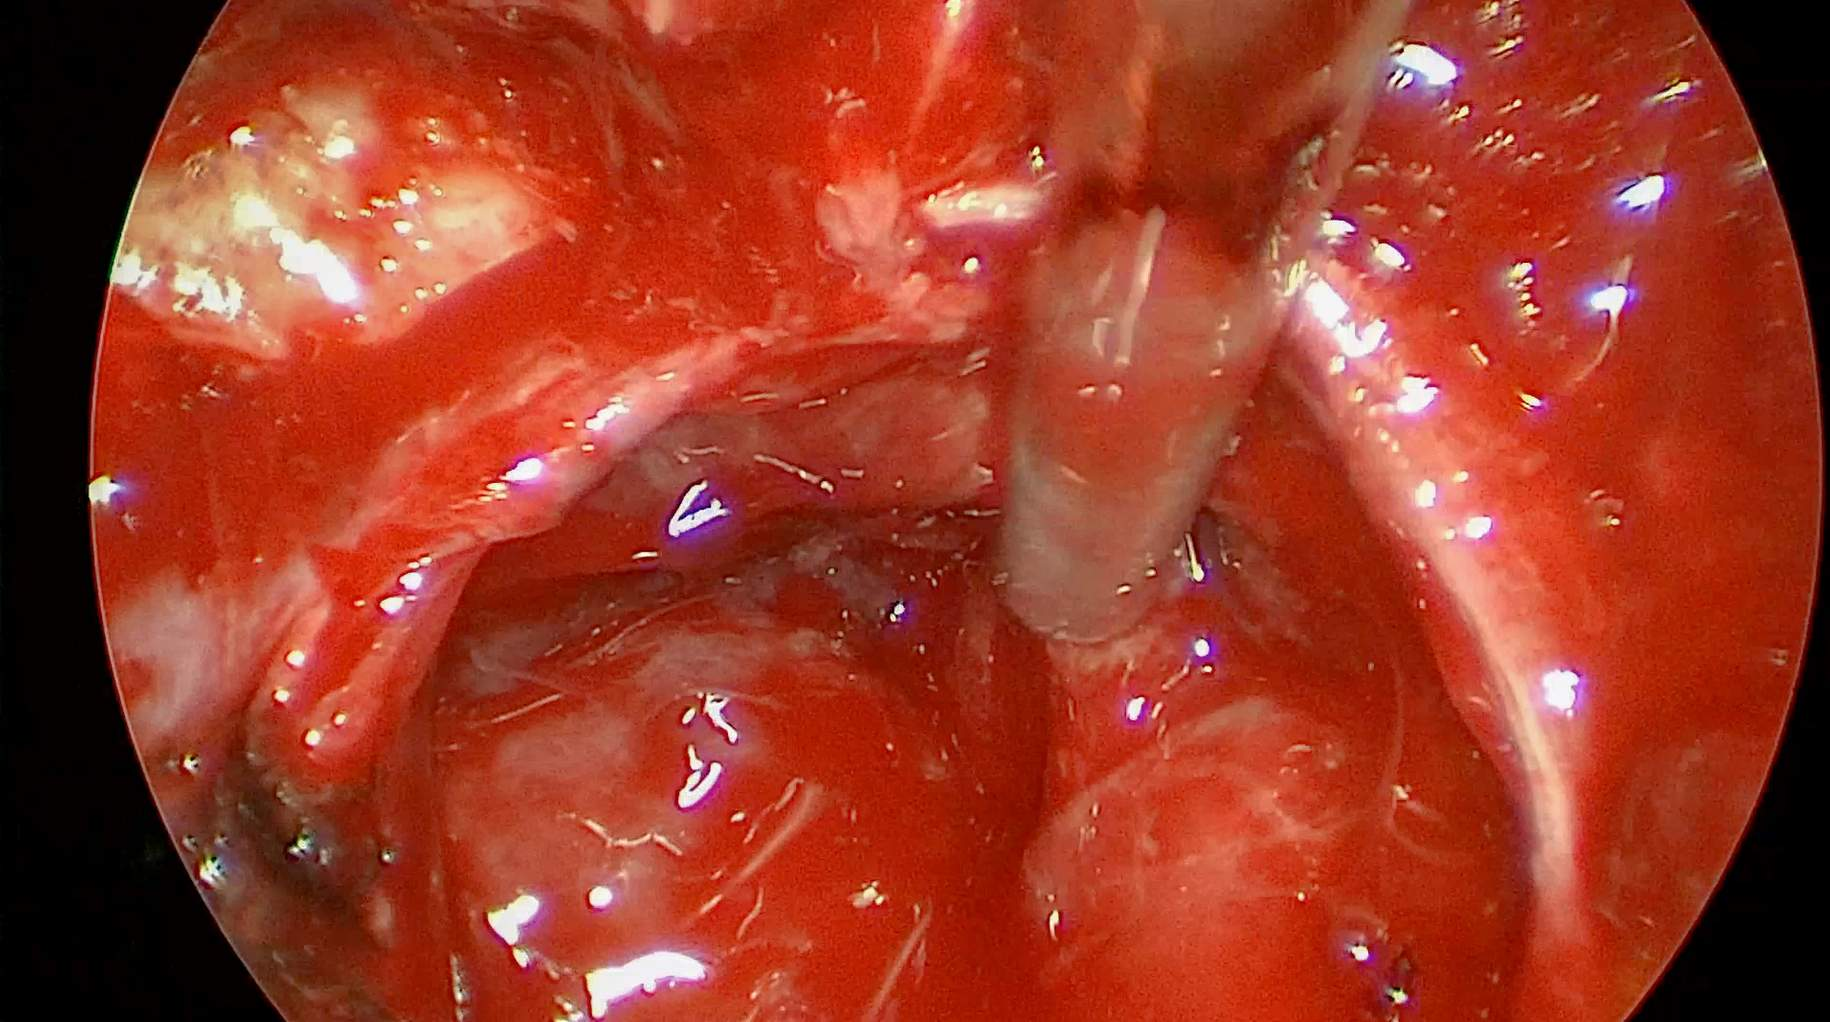 Figure 6: The patulous folds of the diaphragm are shown after portions of the giant adenoma have been resected. The cleft where the suction device is located most likely contains additional tumor fragments tracking into the suprasellar space.